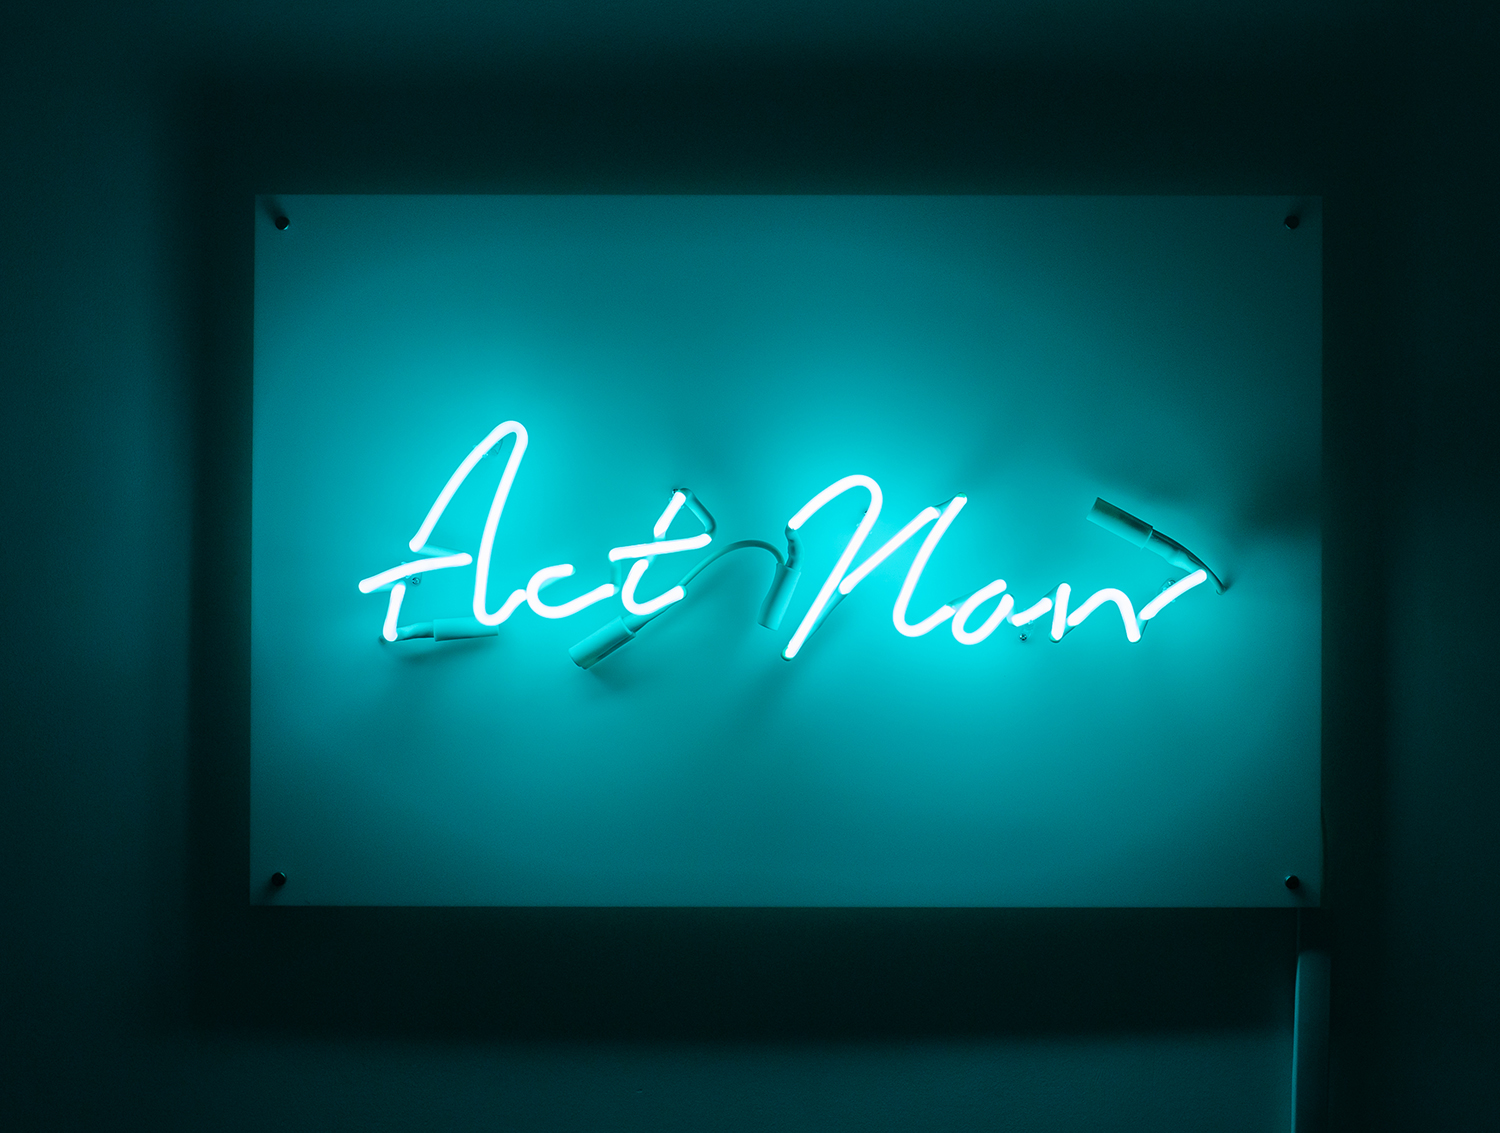 Indira-Cesarine-Act-Now-Neon-Sculpture-Edition-2-2020-2.jpg